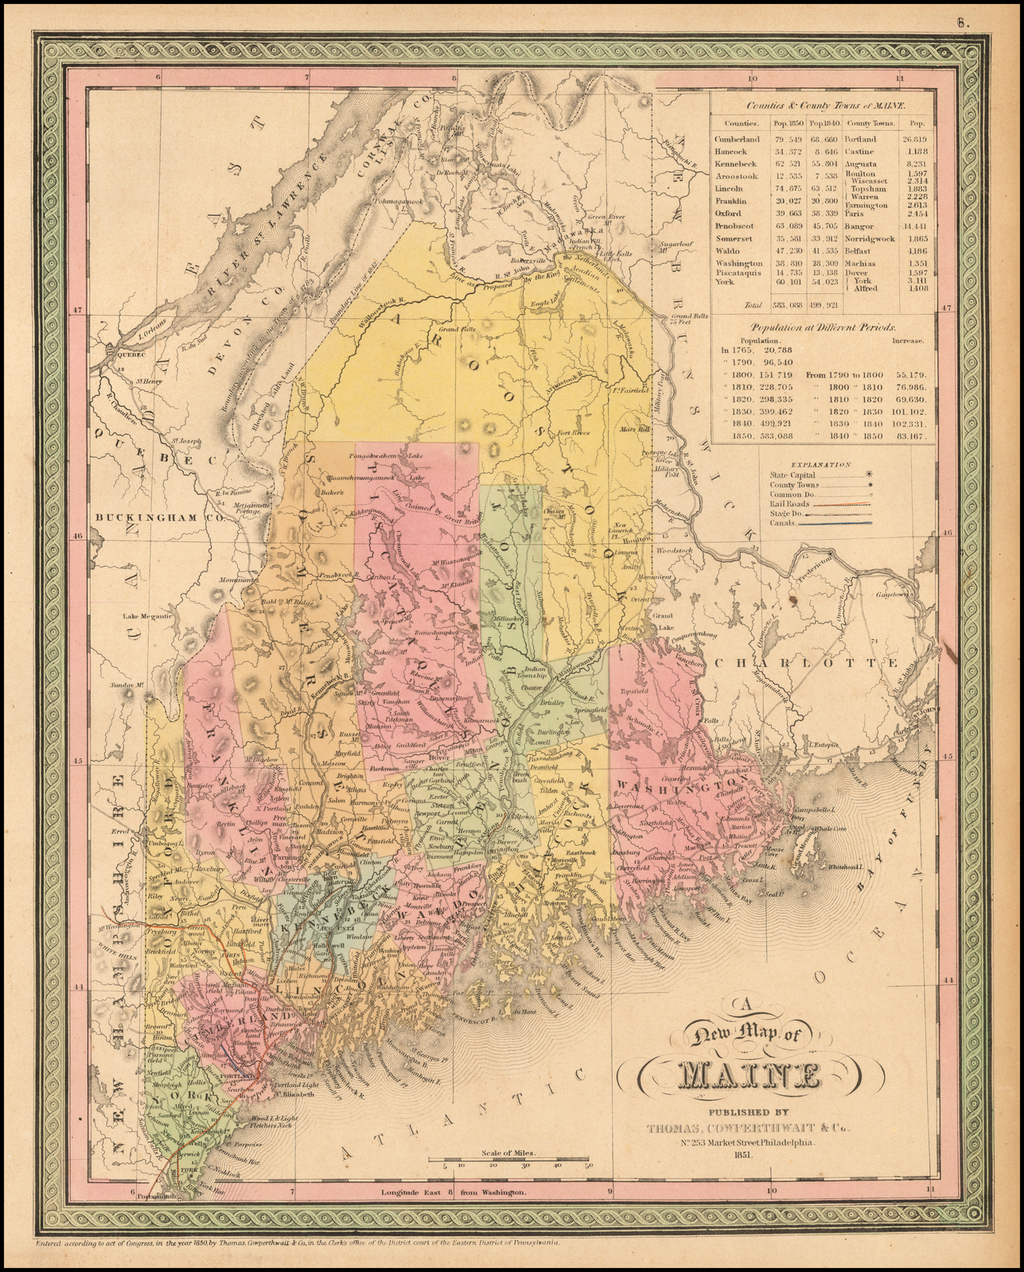 A New Map Of Maine By Thomas, Cowperthwait & Co.